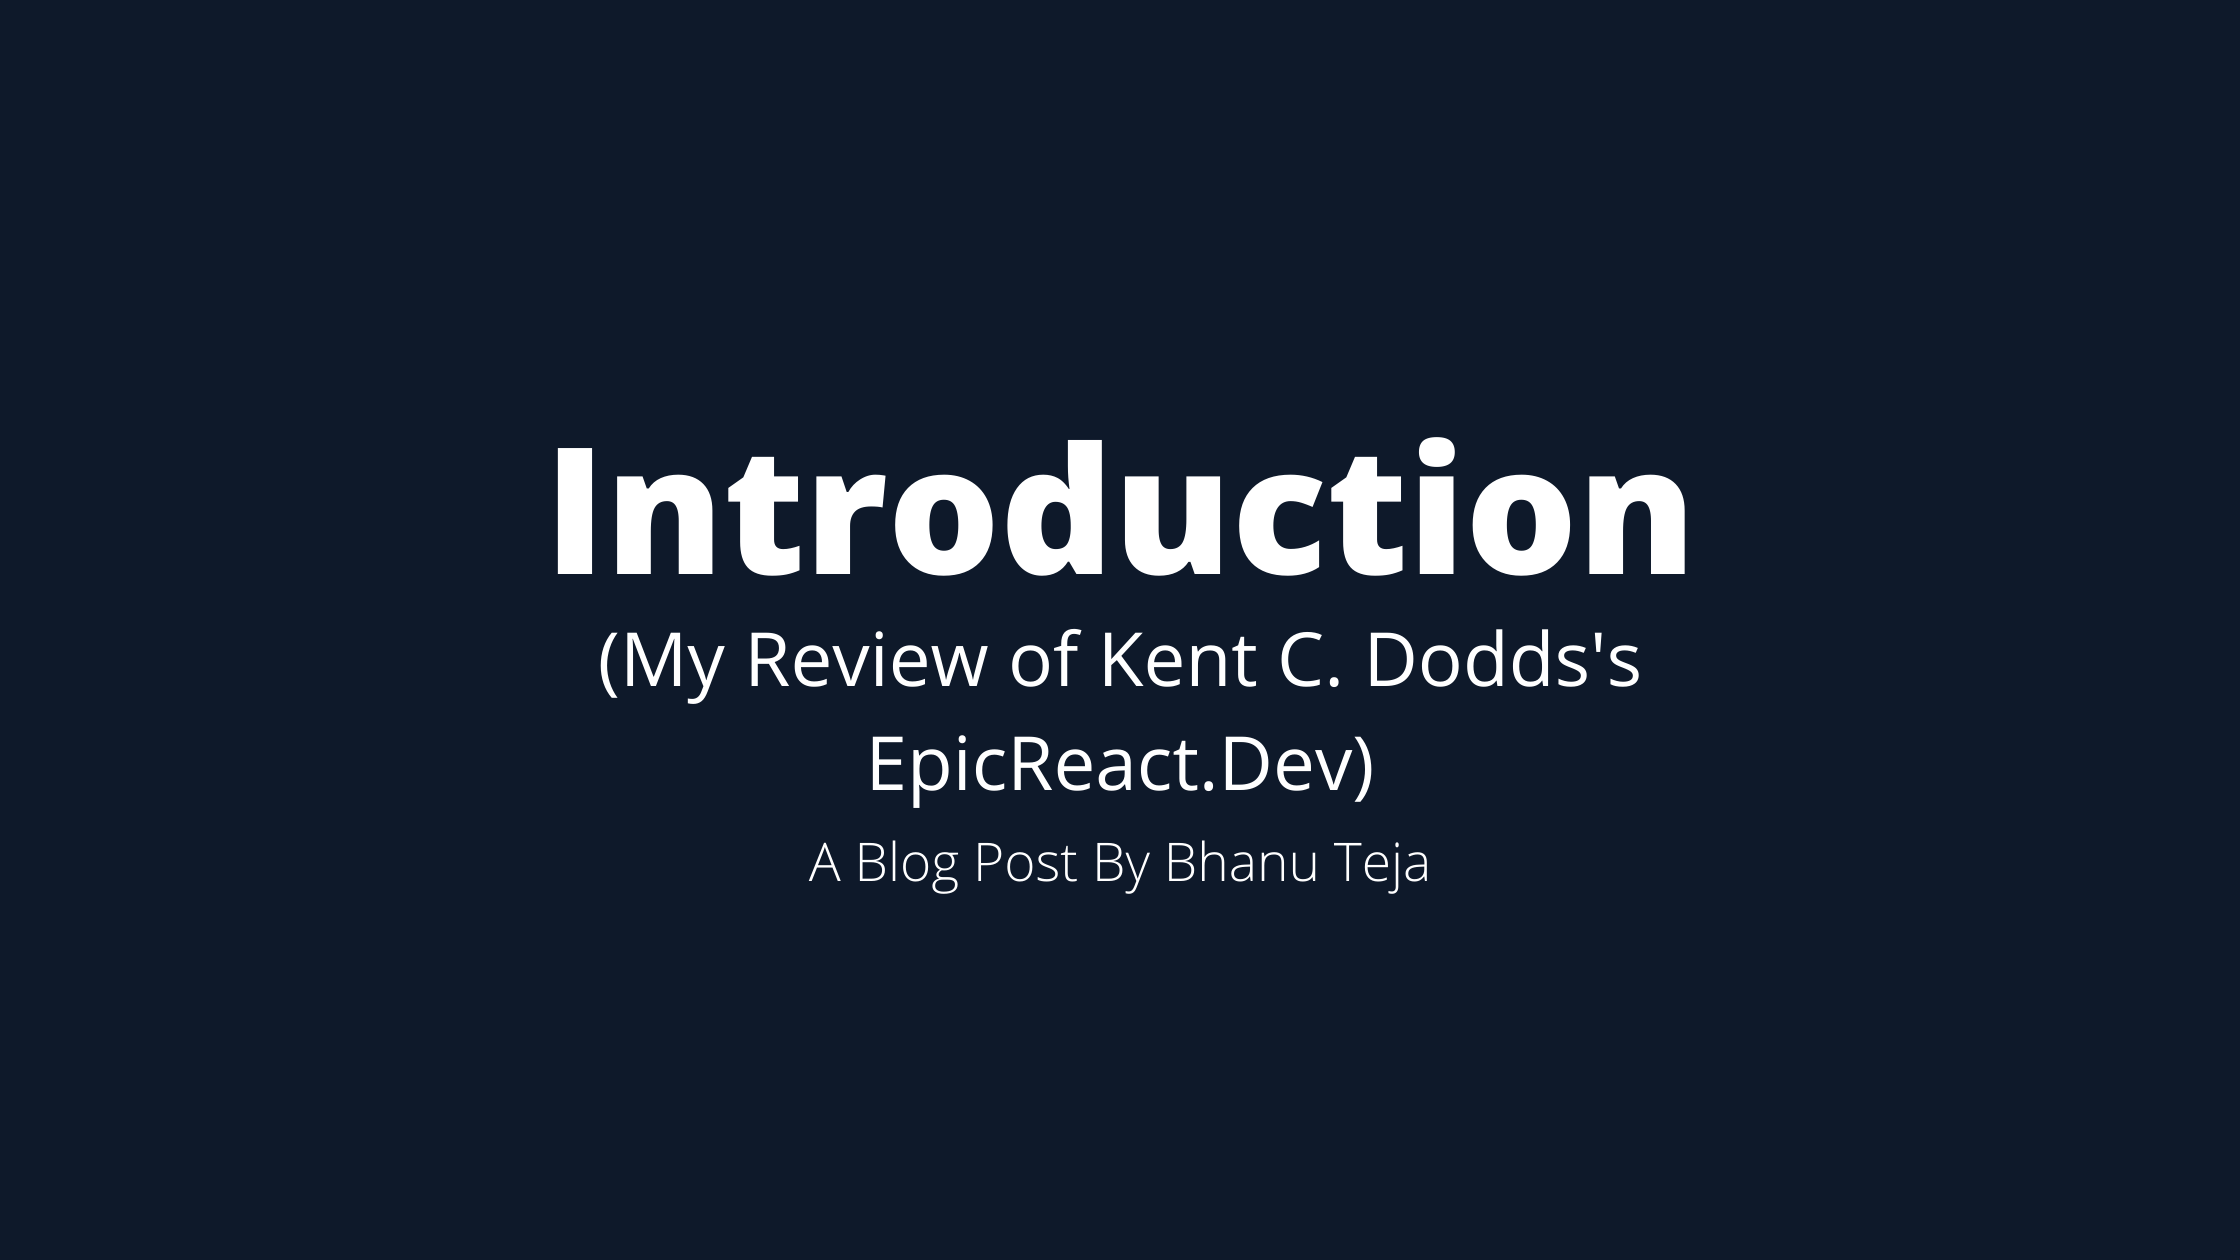 My Review of Kent C. Dodds's EpicReact.Dev: Introduction